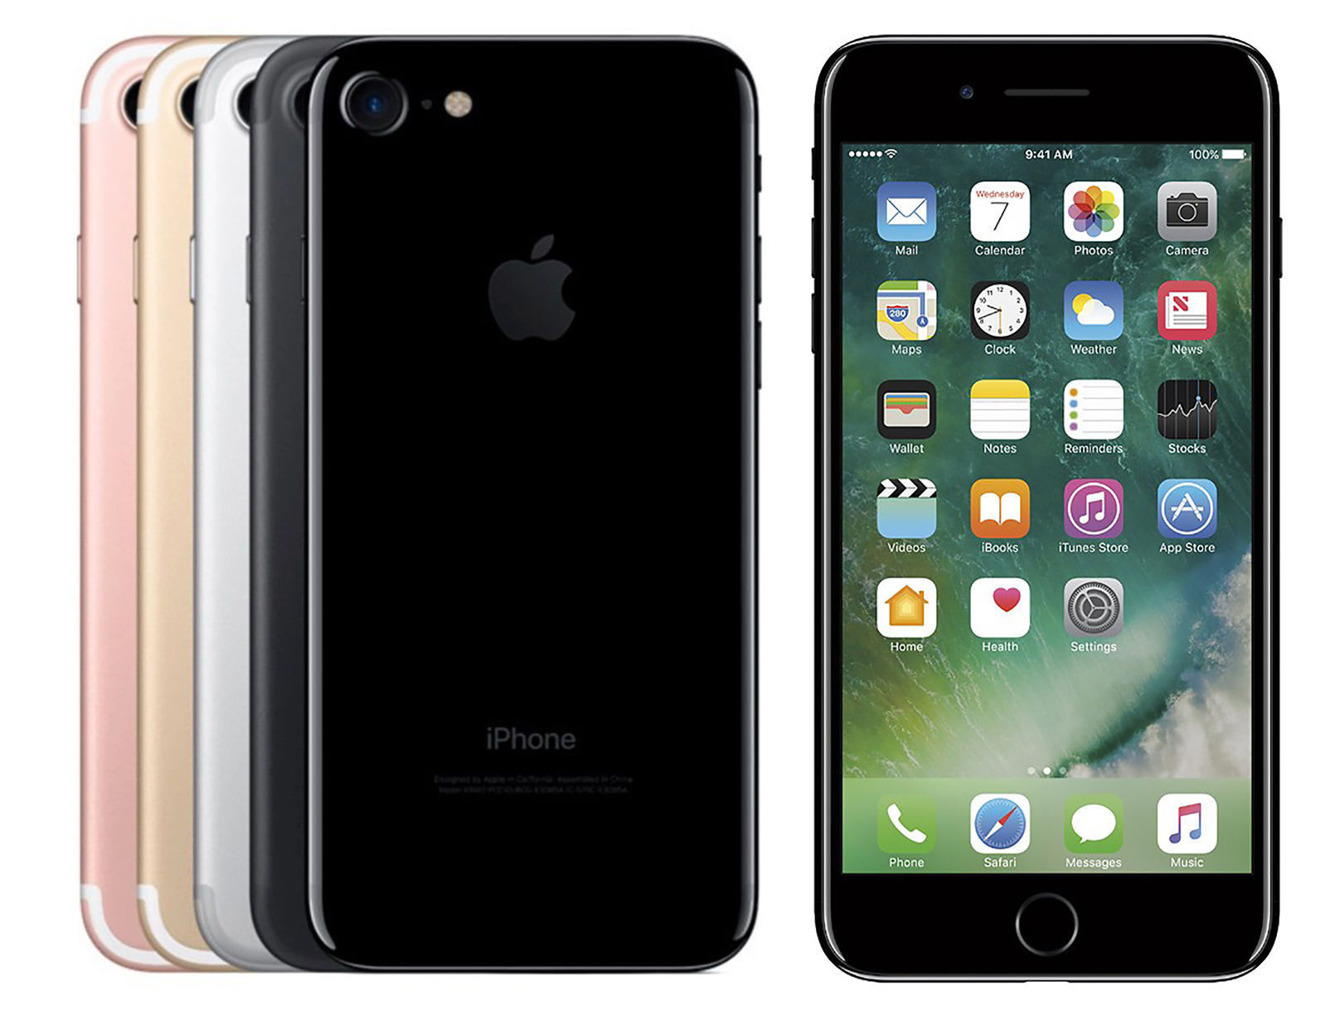 iphone 7 model deals unlocked iphone 7s in stock up to 100 2016 12 11540